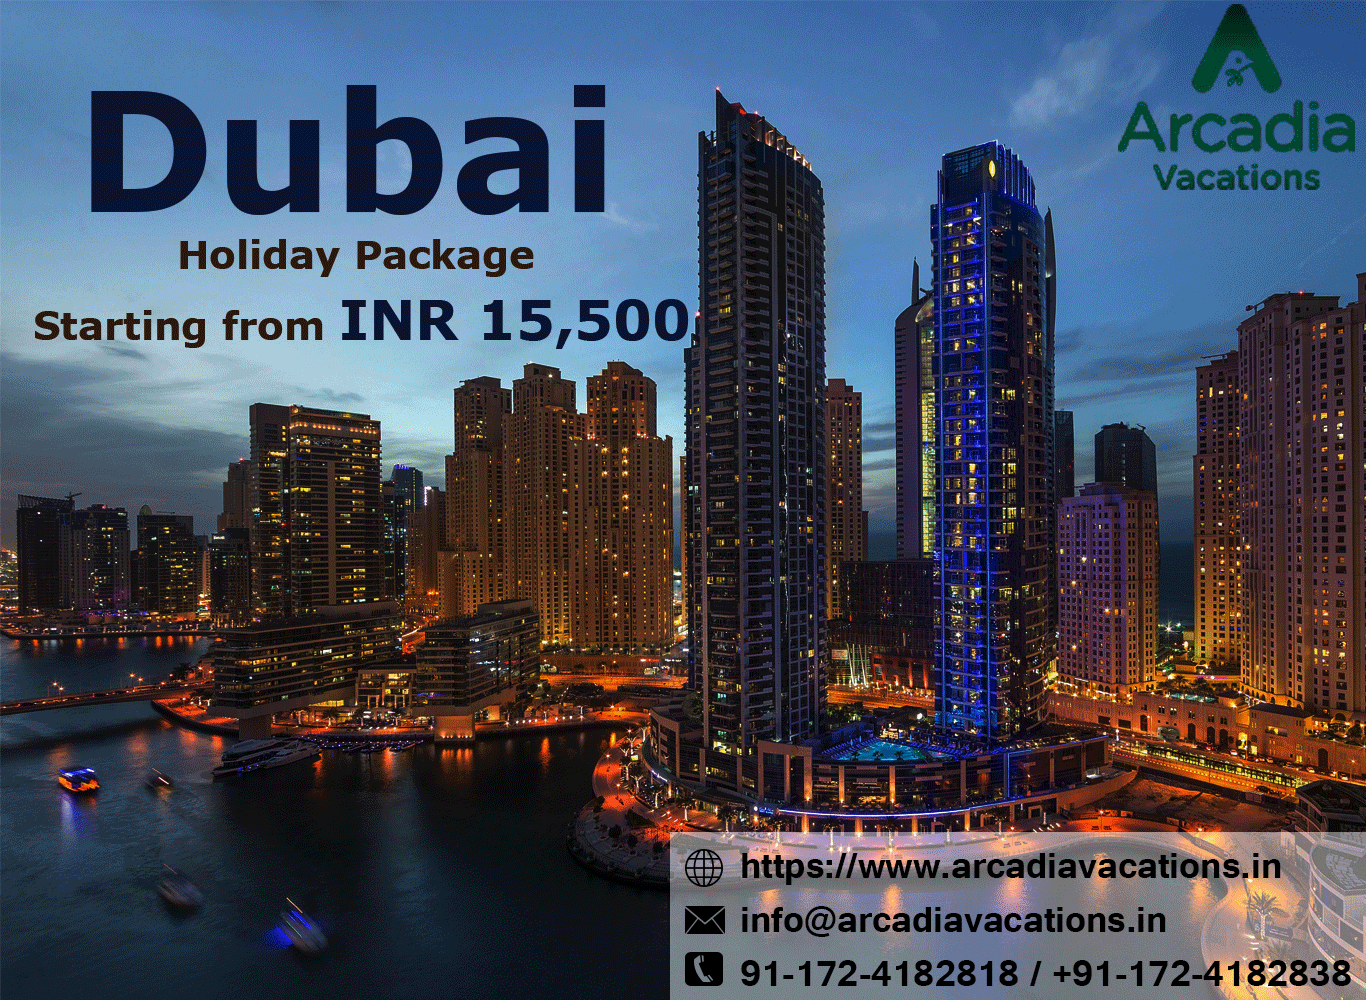 Dubai Holiday Package Dubai holidays, Holiday packaging